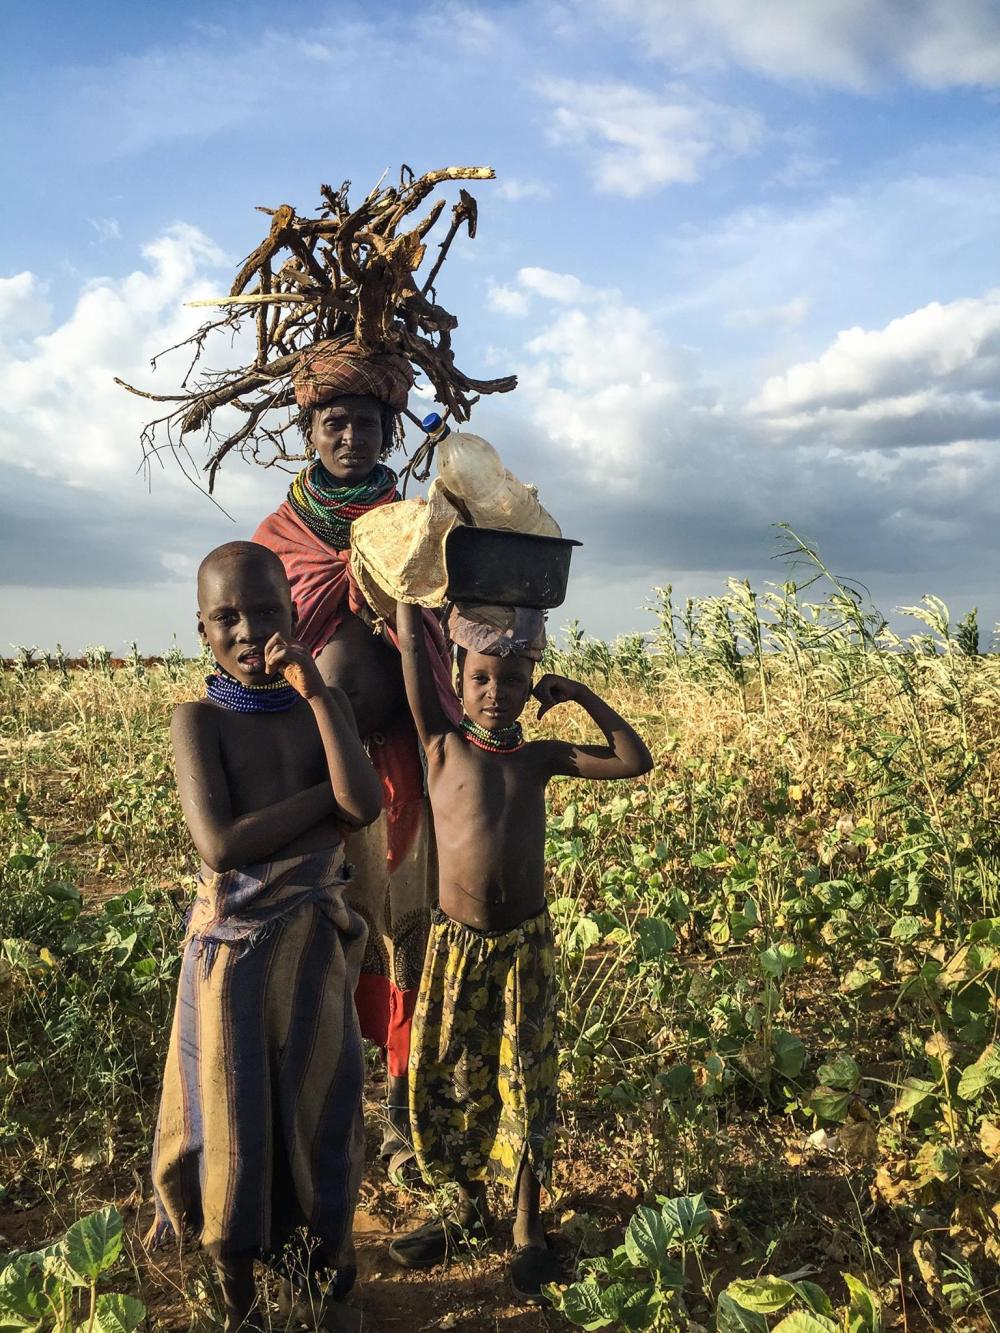 After a long day working in the fields, a woman and her children return home carrying firewood and cooking utensils. Kakuta, Nyangatom, lower Omo, May 2016.